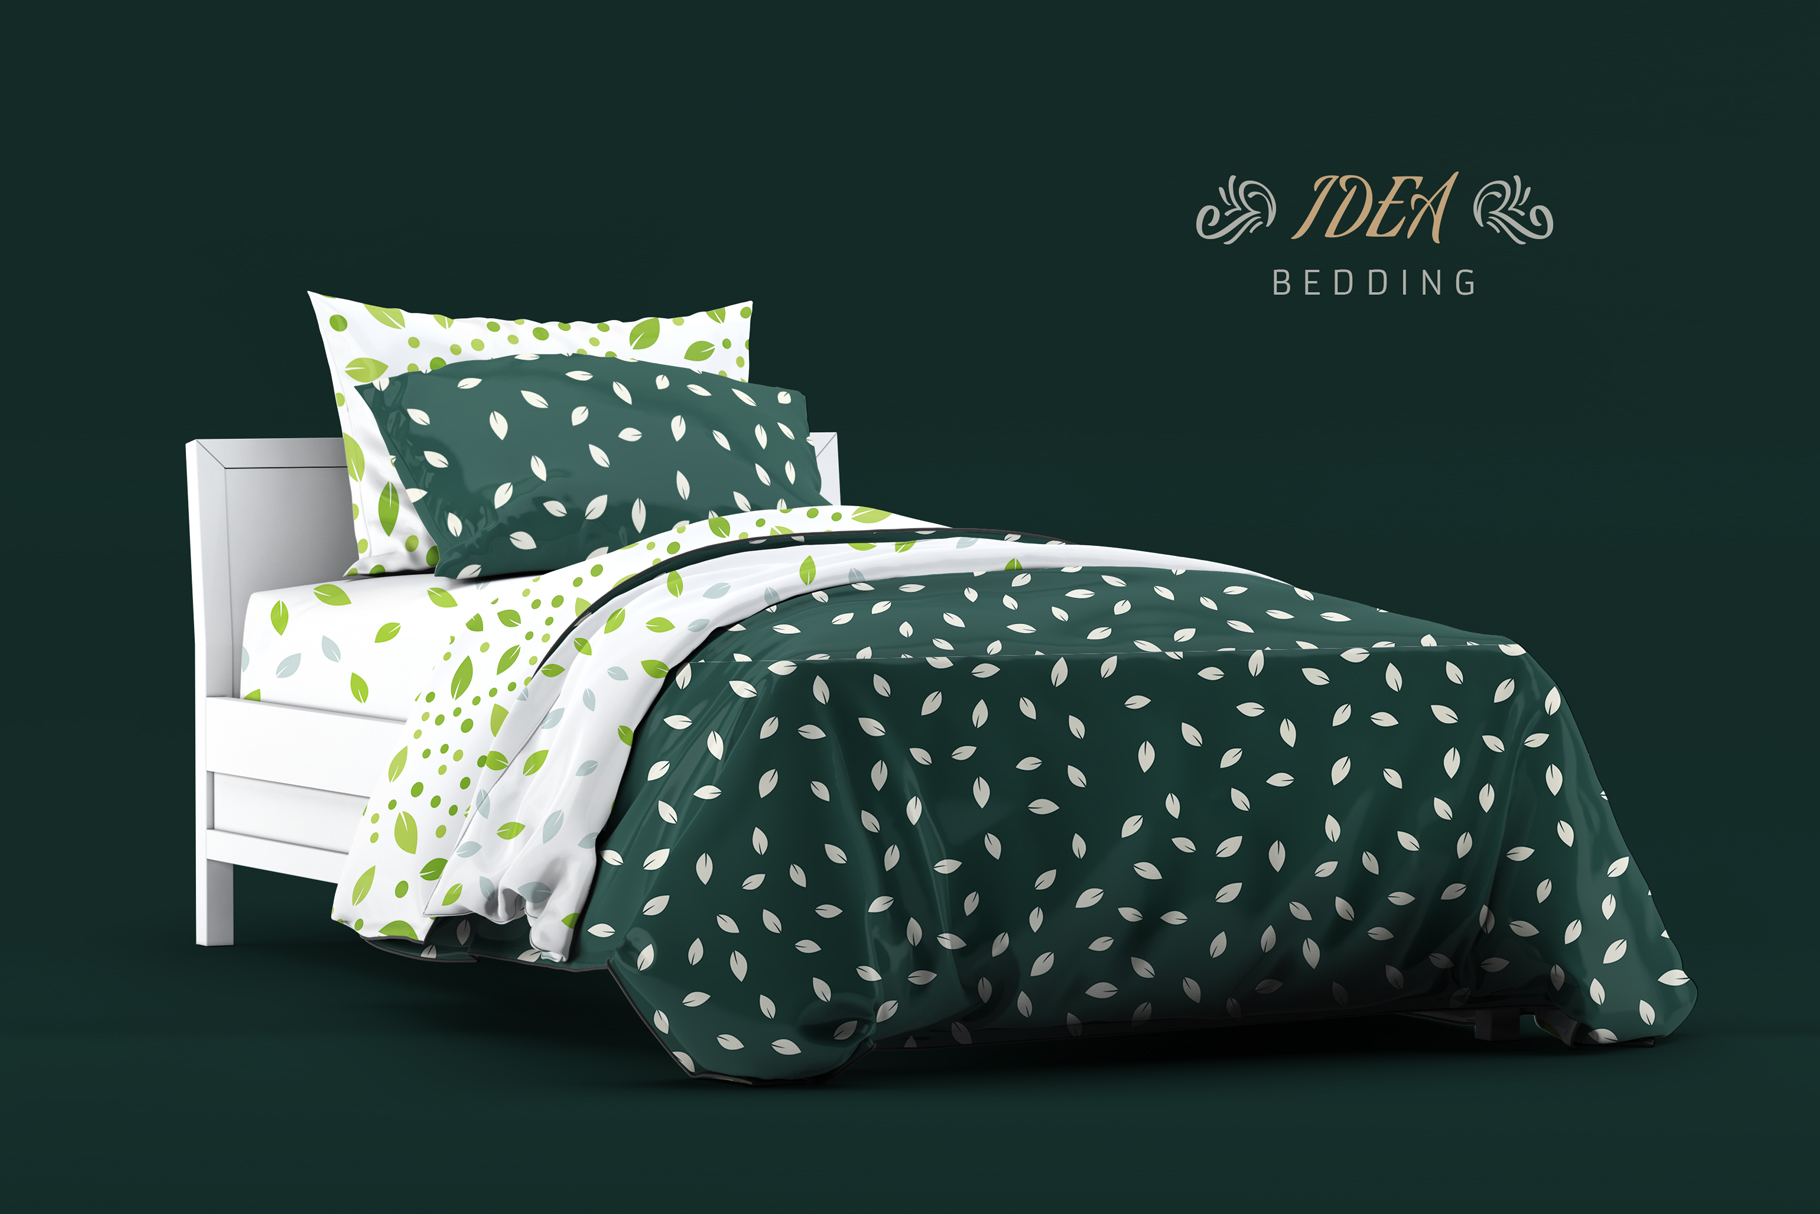 100 Seamless Patterns Vol.1 example image 4